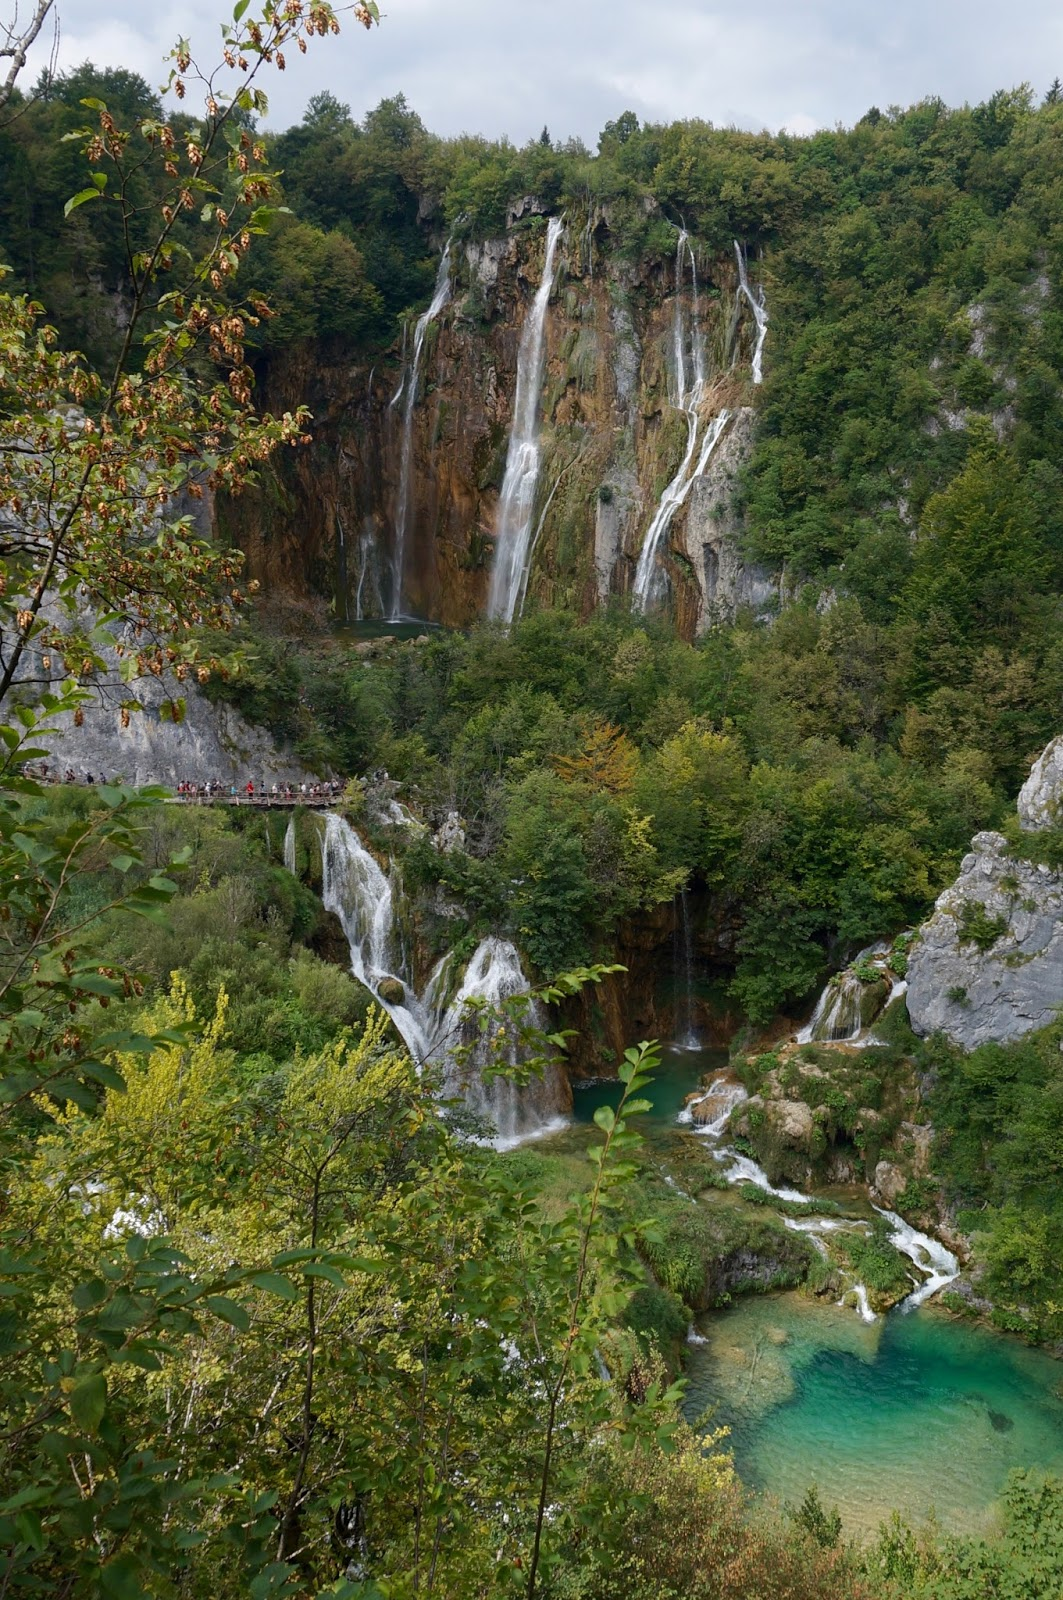 WATERFALLS PLITVICE LAKES, CROATIA